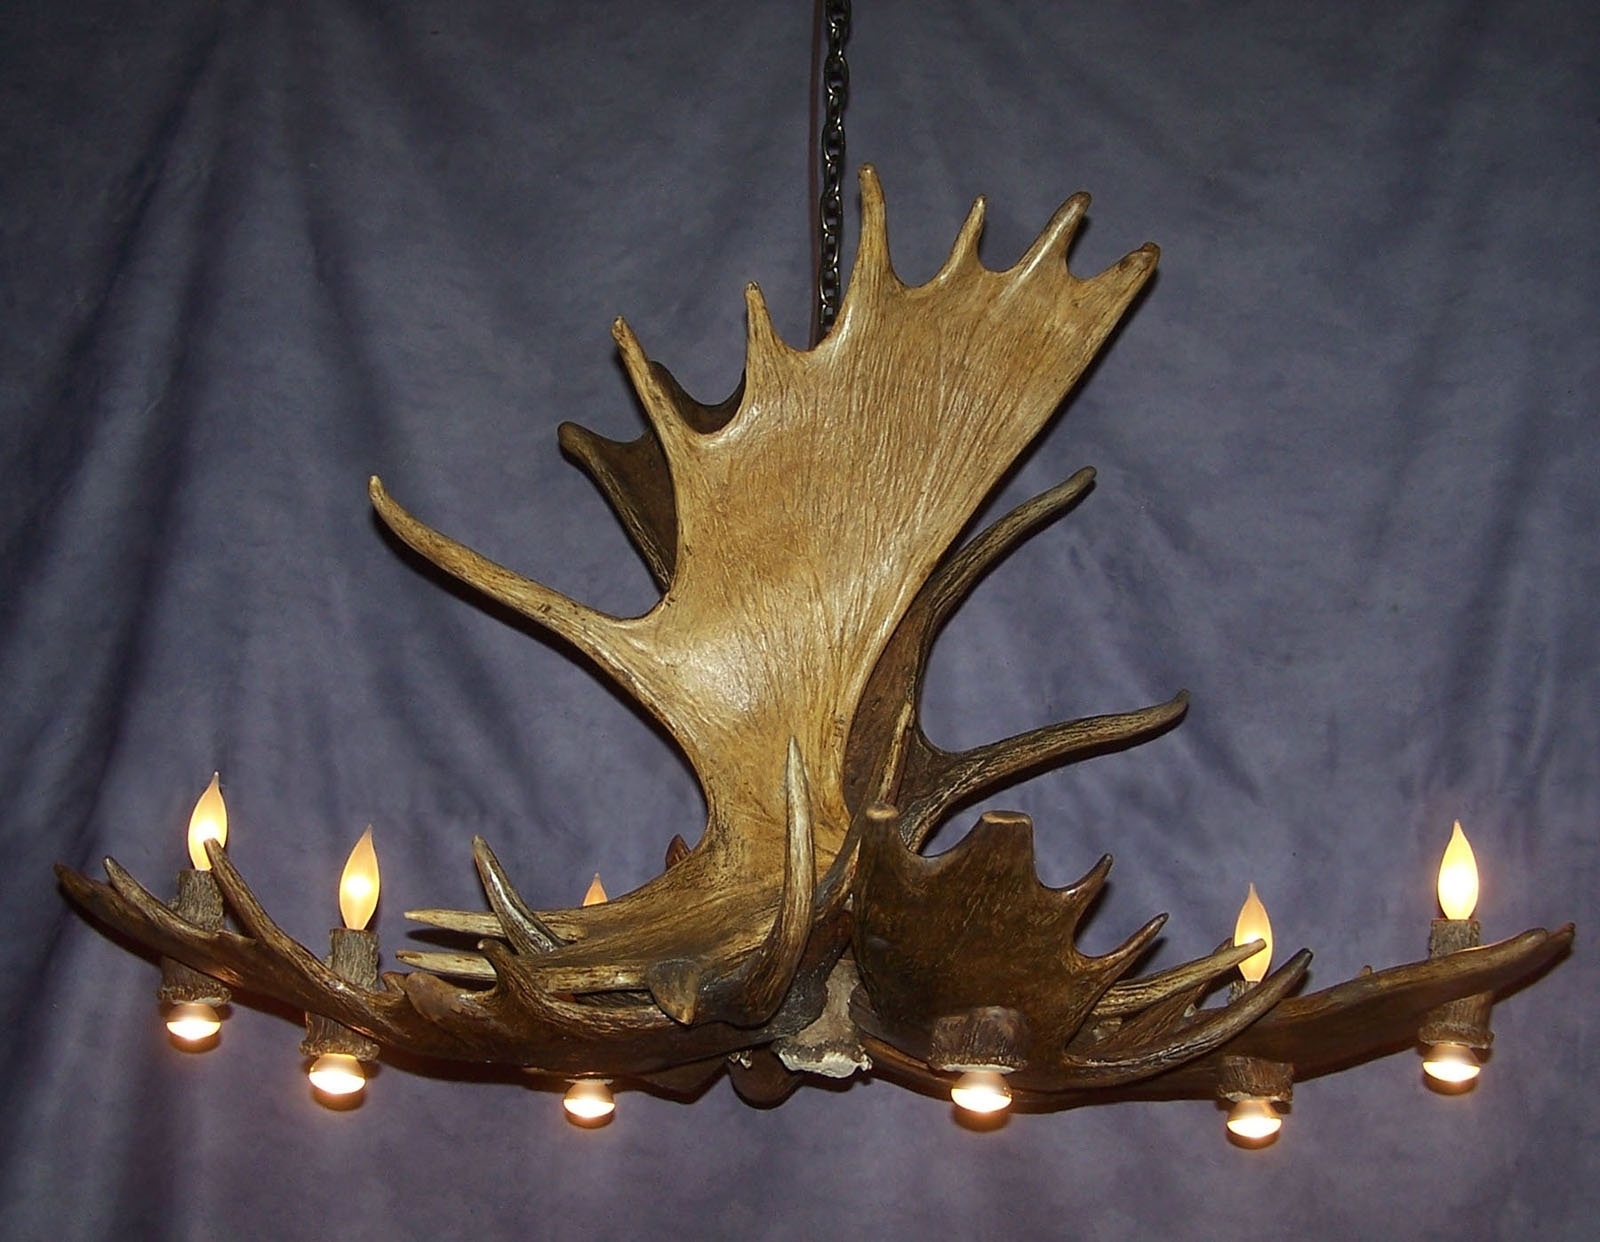 Well Known Antler Chandelier For Moose Pool Table Antler Chandelier, Rustic Deer Lodge Light, Lamps (View 19 of 20)